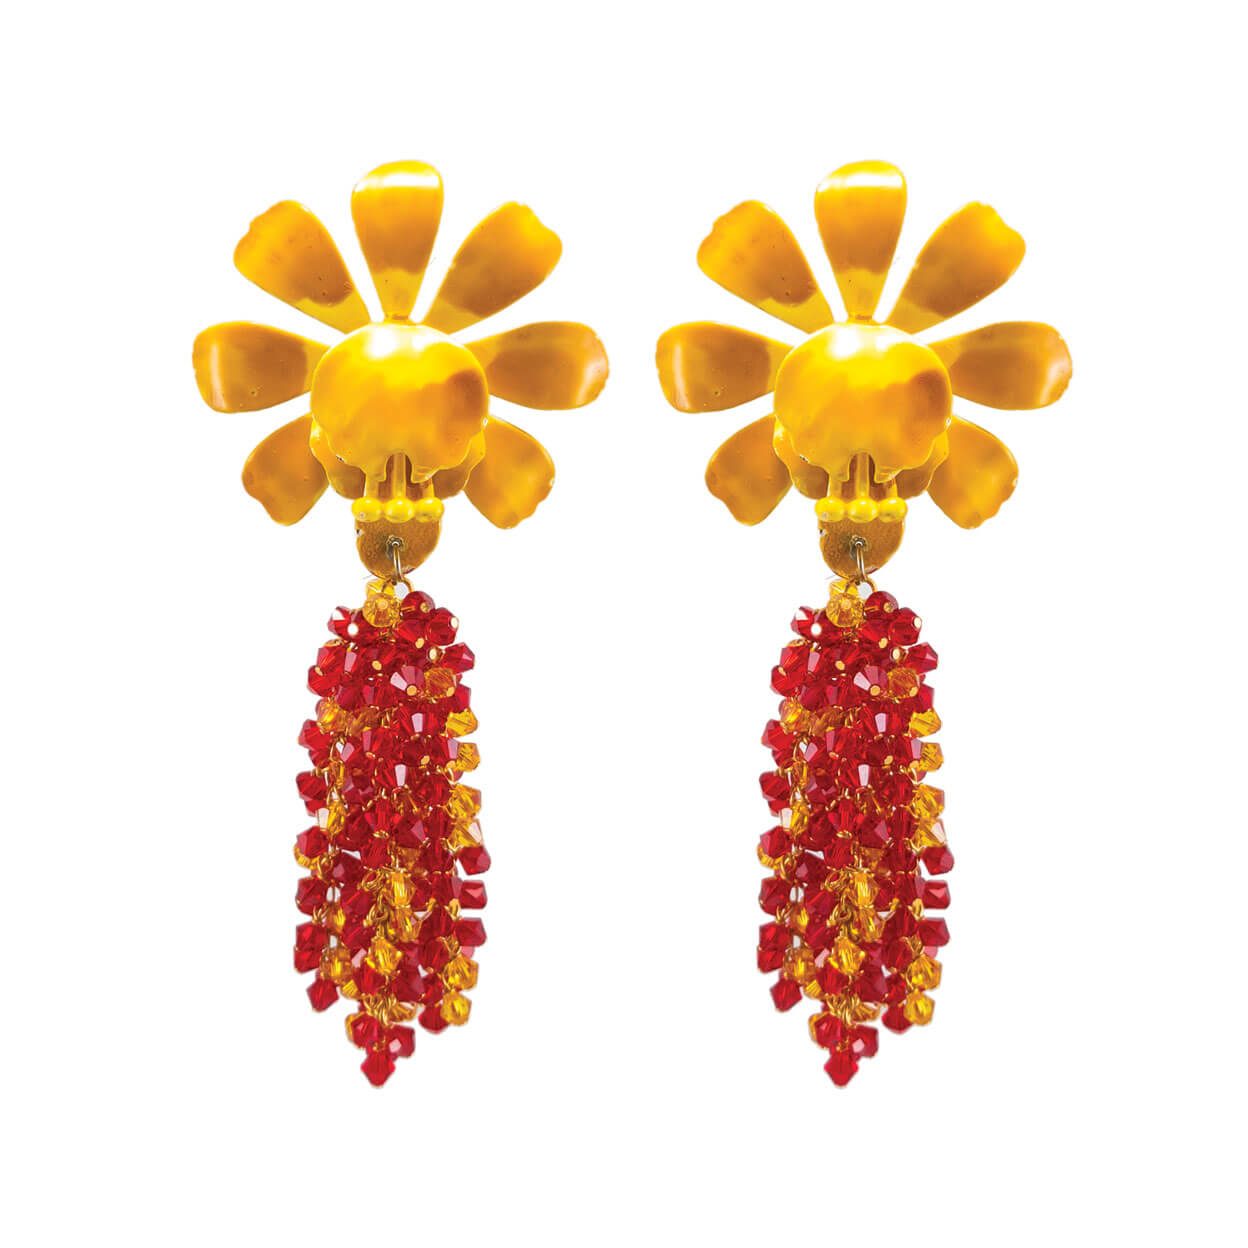 Tropical style gold postback earrings with red & yellow Swarovski crystals hanging from vintage yellow orchid flowers.